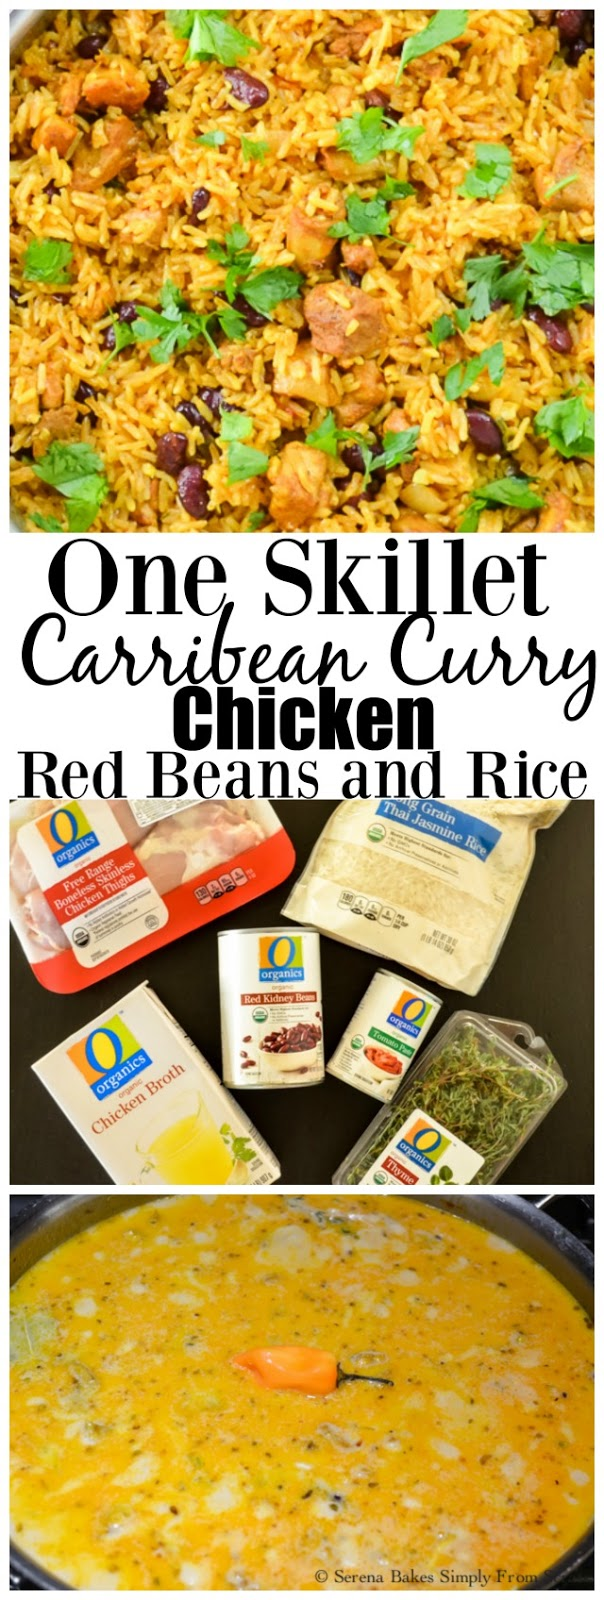 One Skillet Caribbean Curry Chicken Red Beans and Rice an easy dinner in under 30 minutes!  serenabakessimplyfromscratch.com